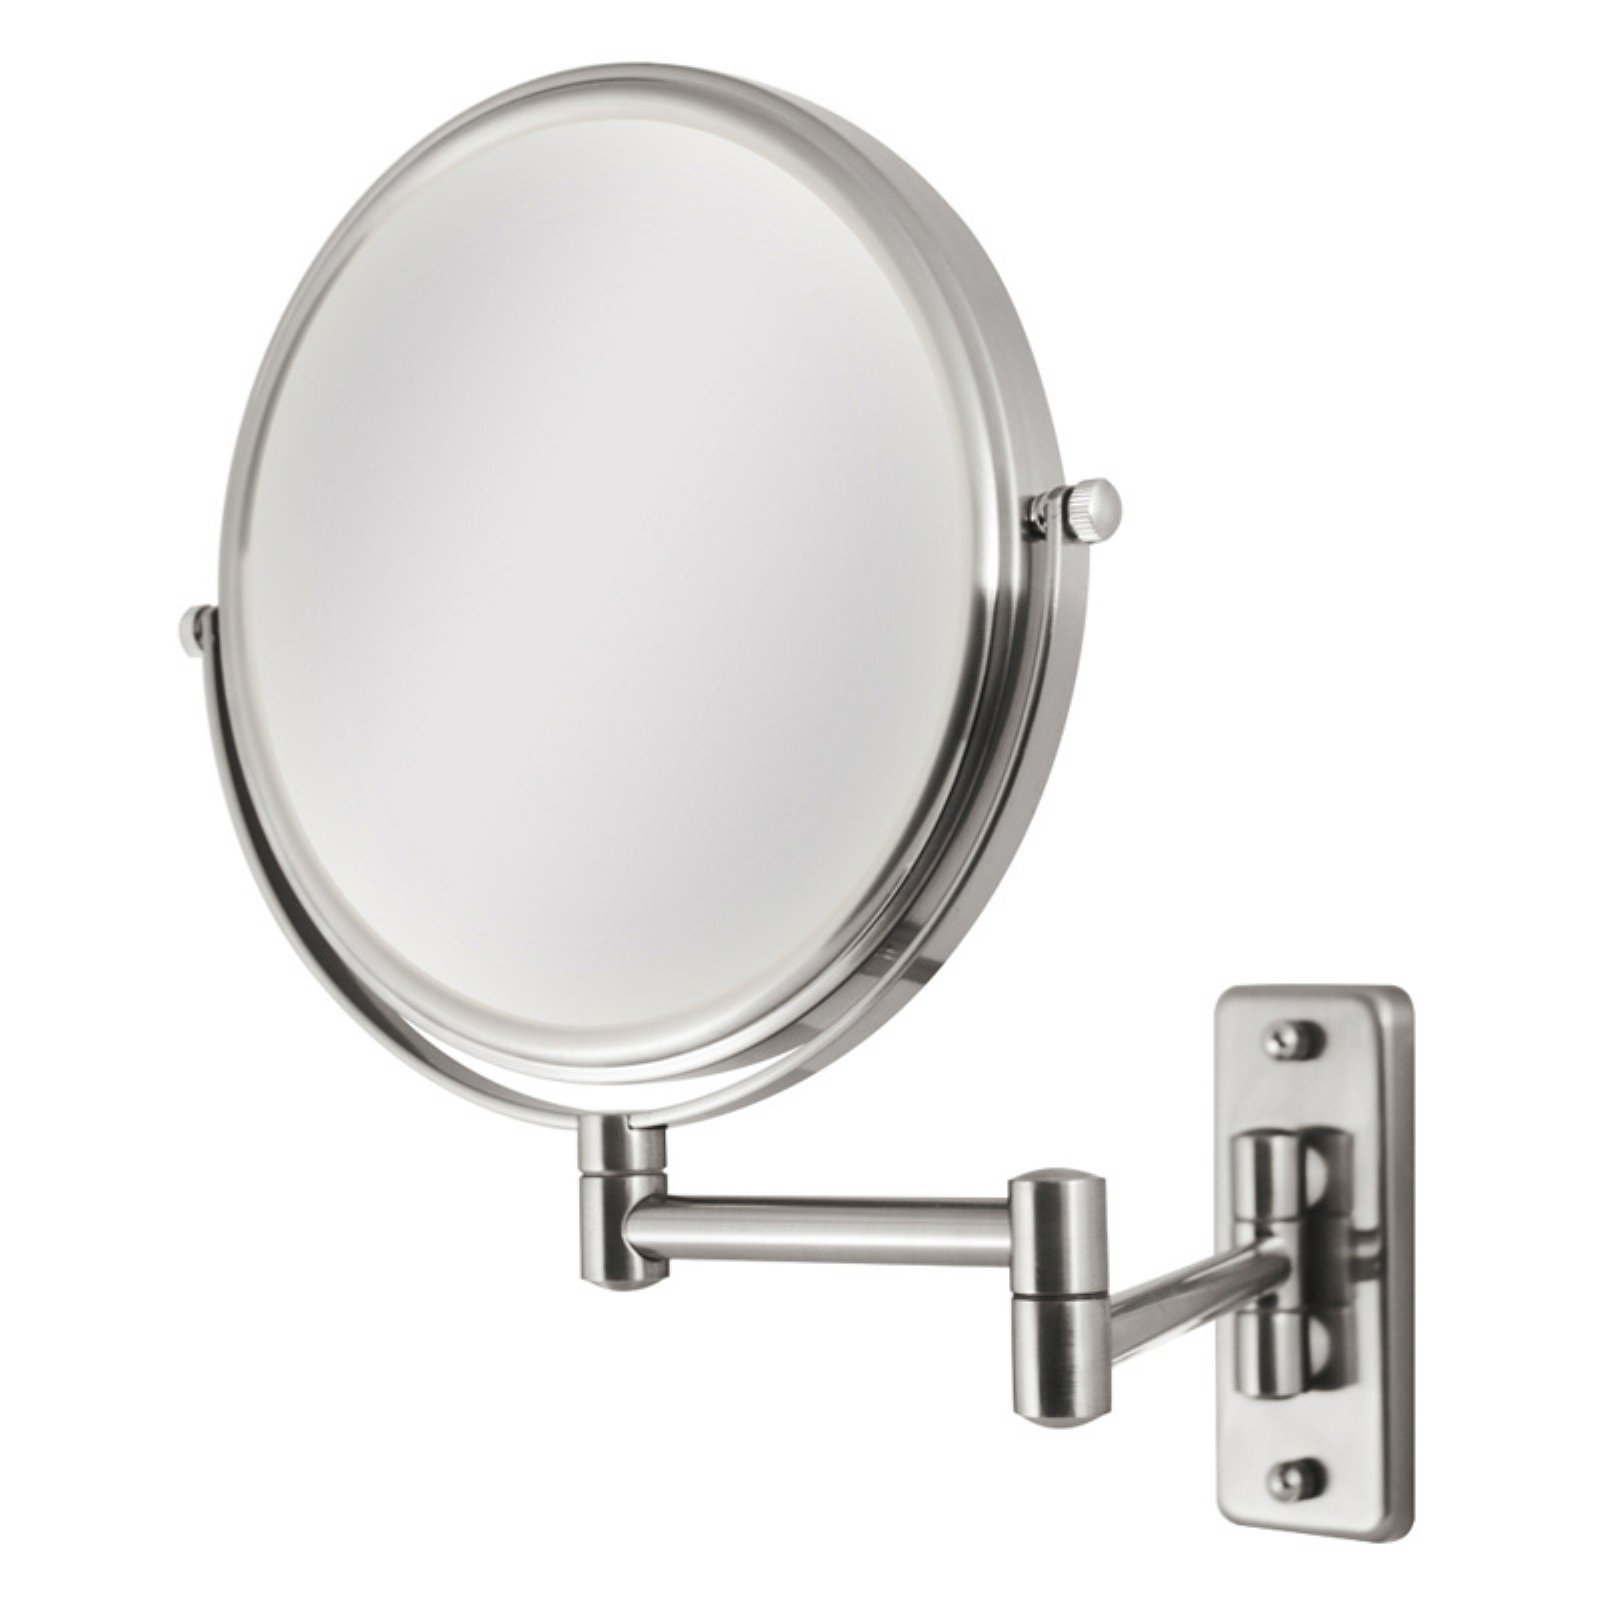 Ovw45 Zadro Two Sided Dual Arm Wall Mount Mirror With 1x